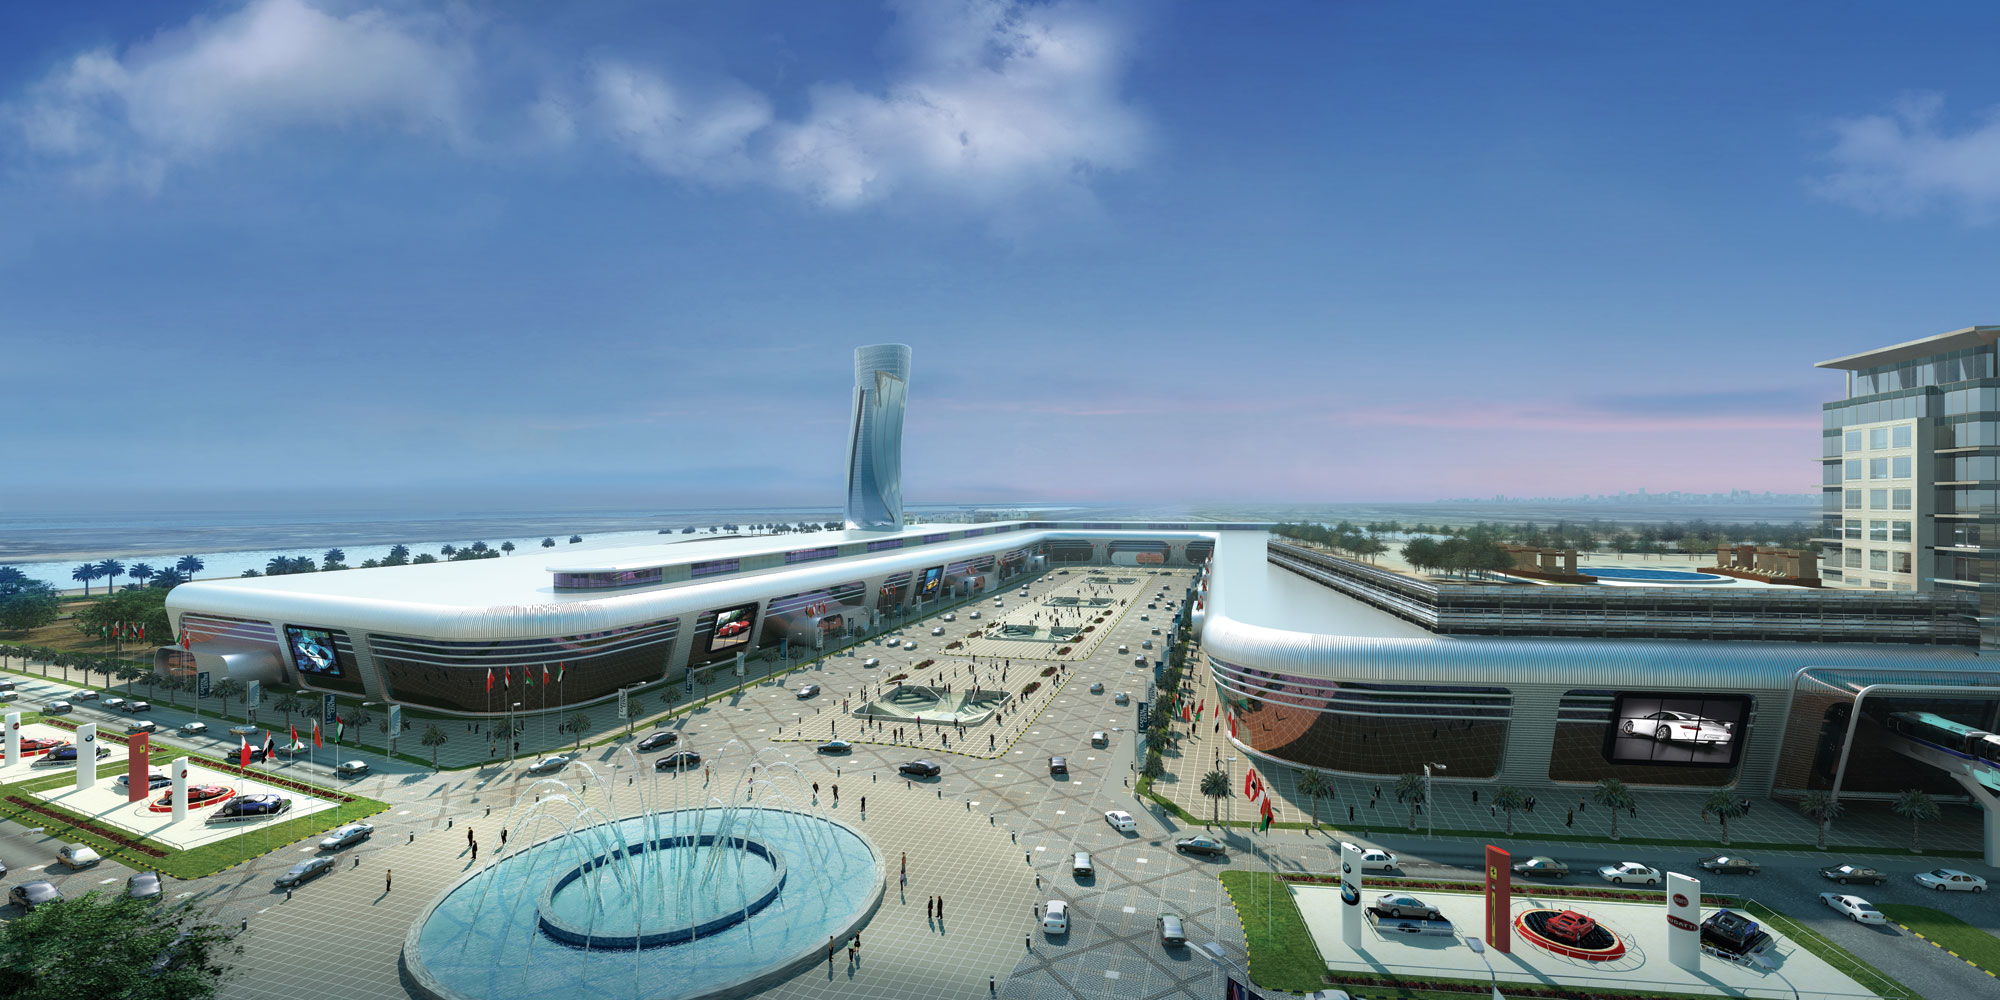 The Abu Dhabi National exhibition Centre is the largest exhibition centre in the Middle East with a total space of 133,000sqm